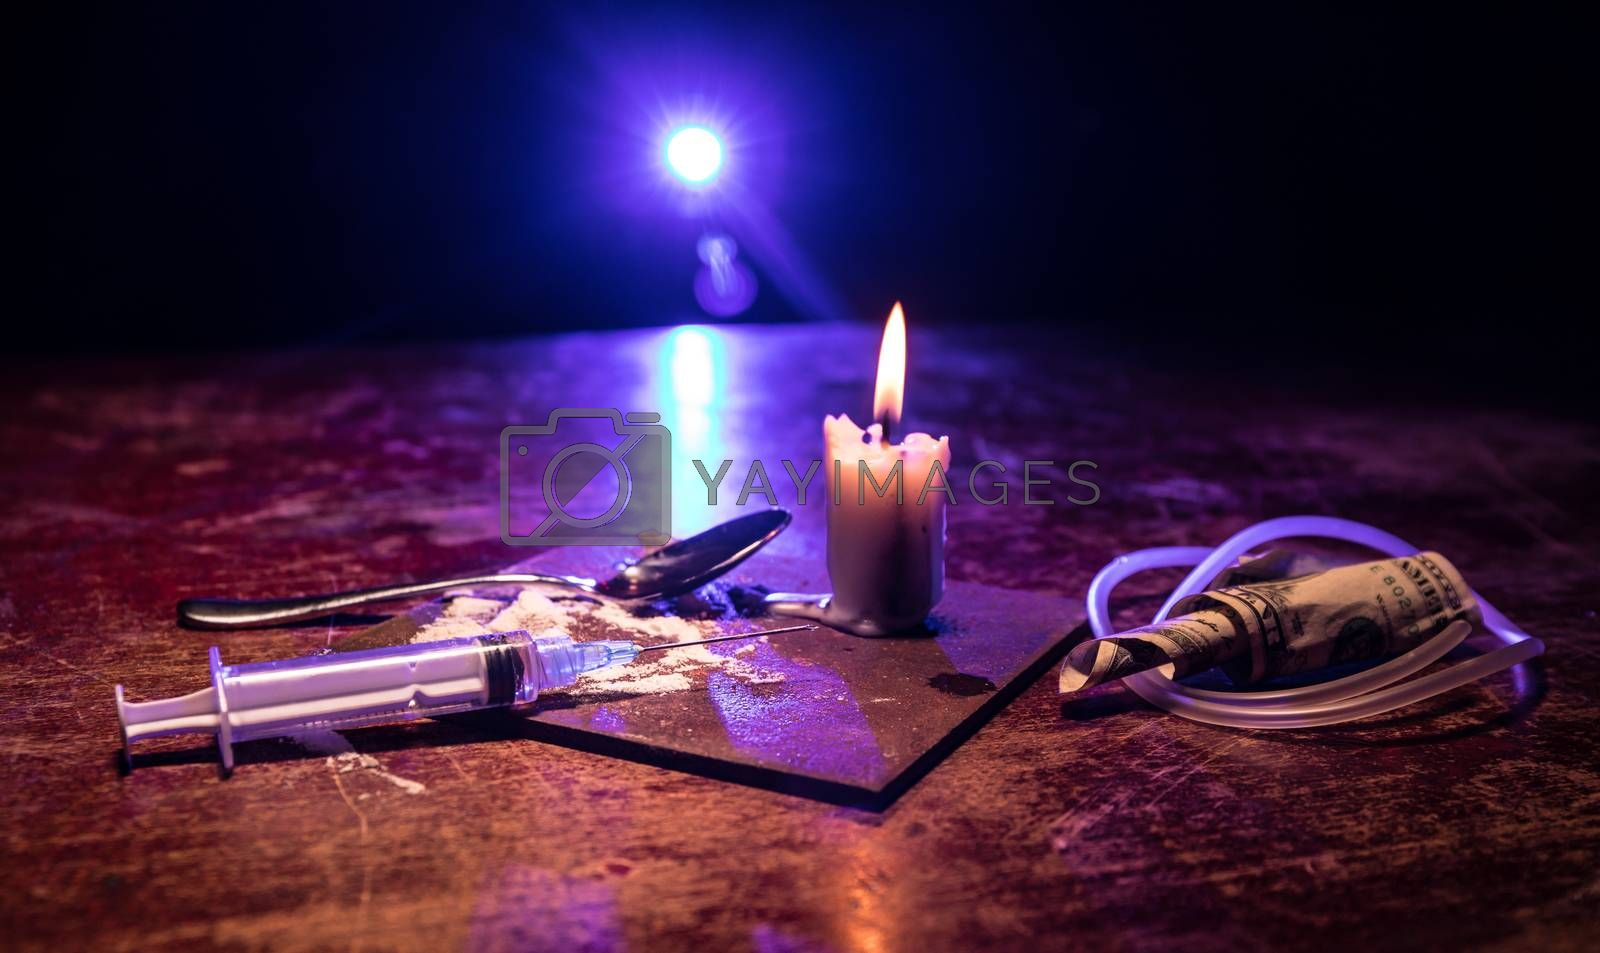 Narcotic drug problem concept. Drug syringe and narcotic attributes on wooden table. Purchase, possession and sale of drugs is punishable by law. Creative artwork decoration